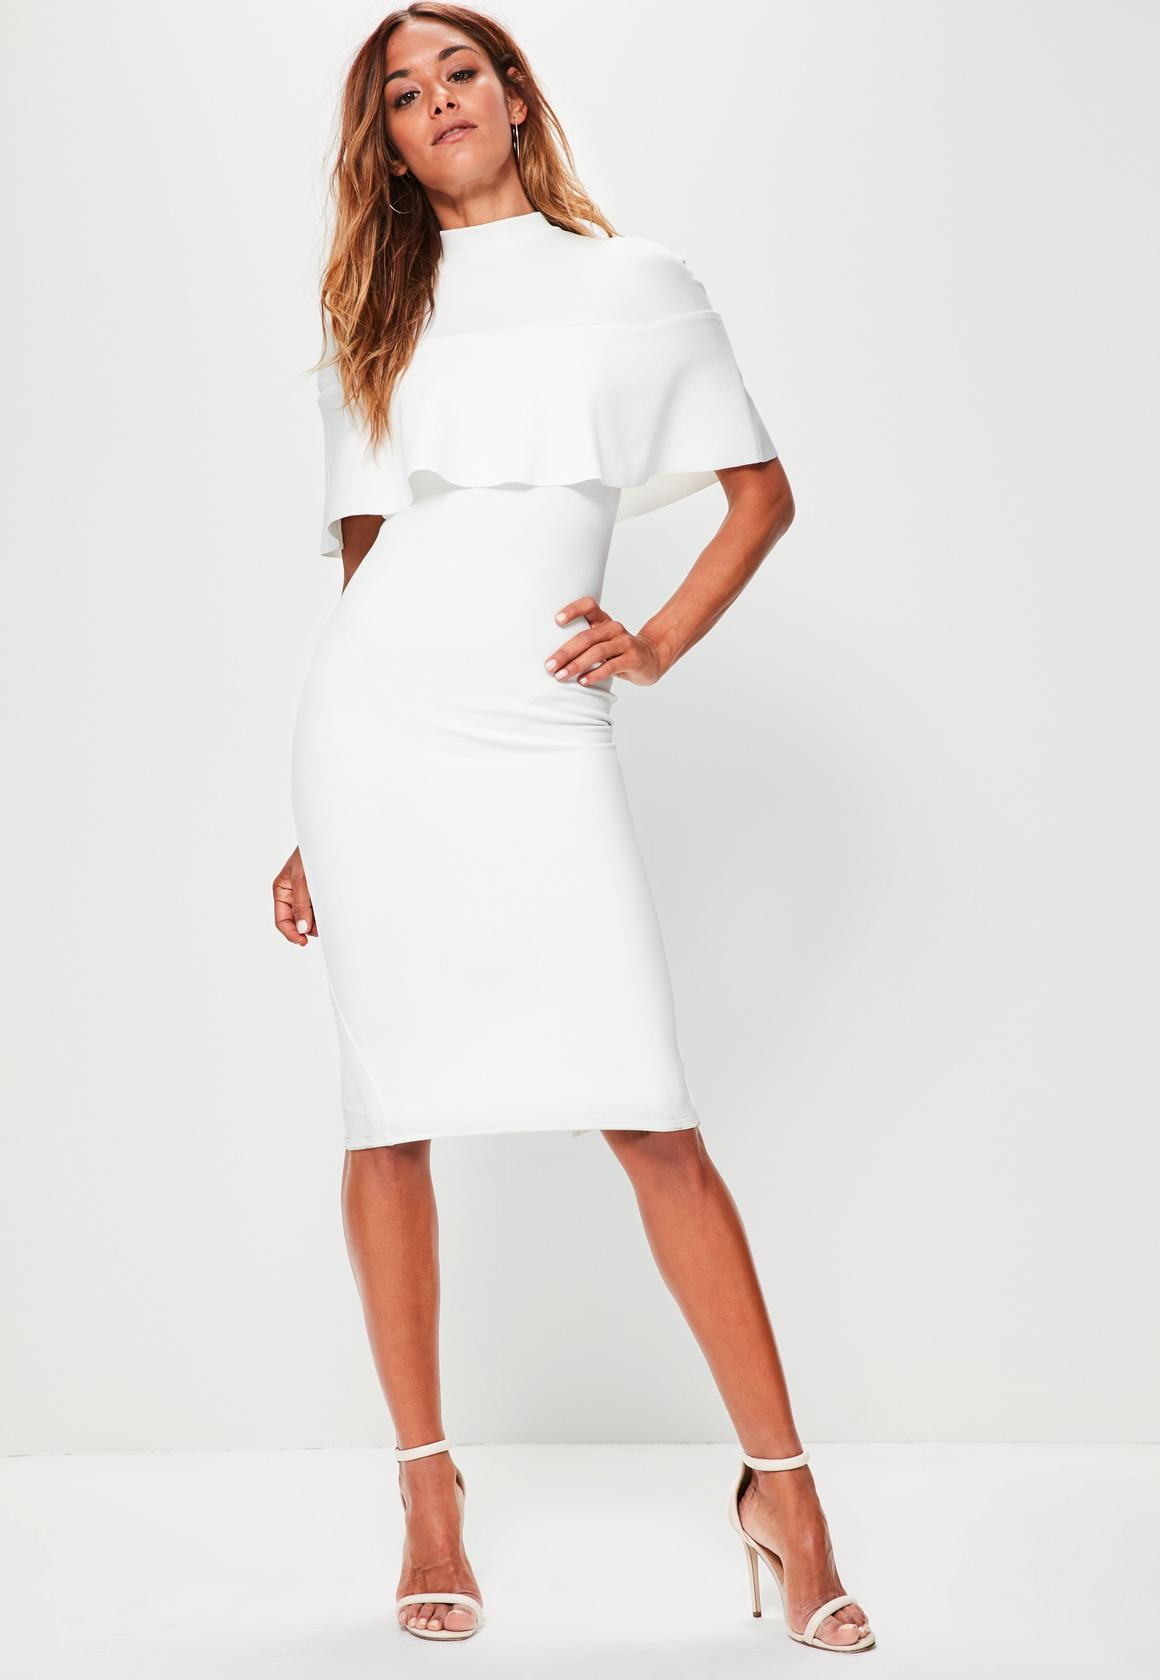 White Frill Overlay Dress 42 From Missgud